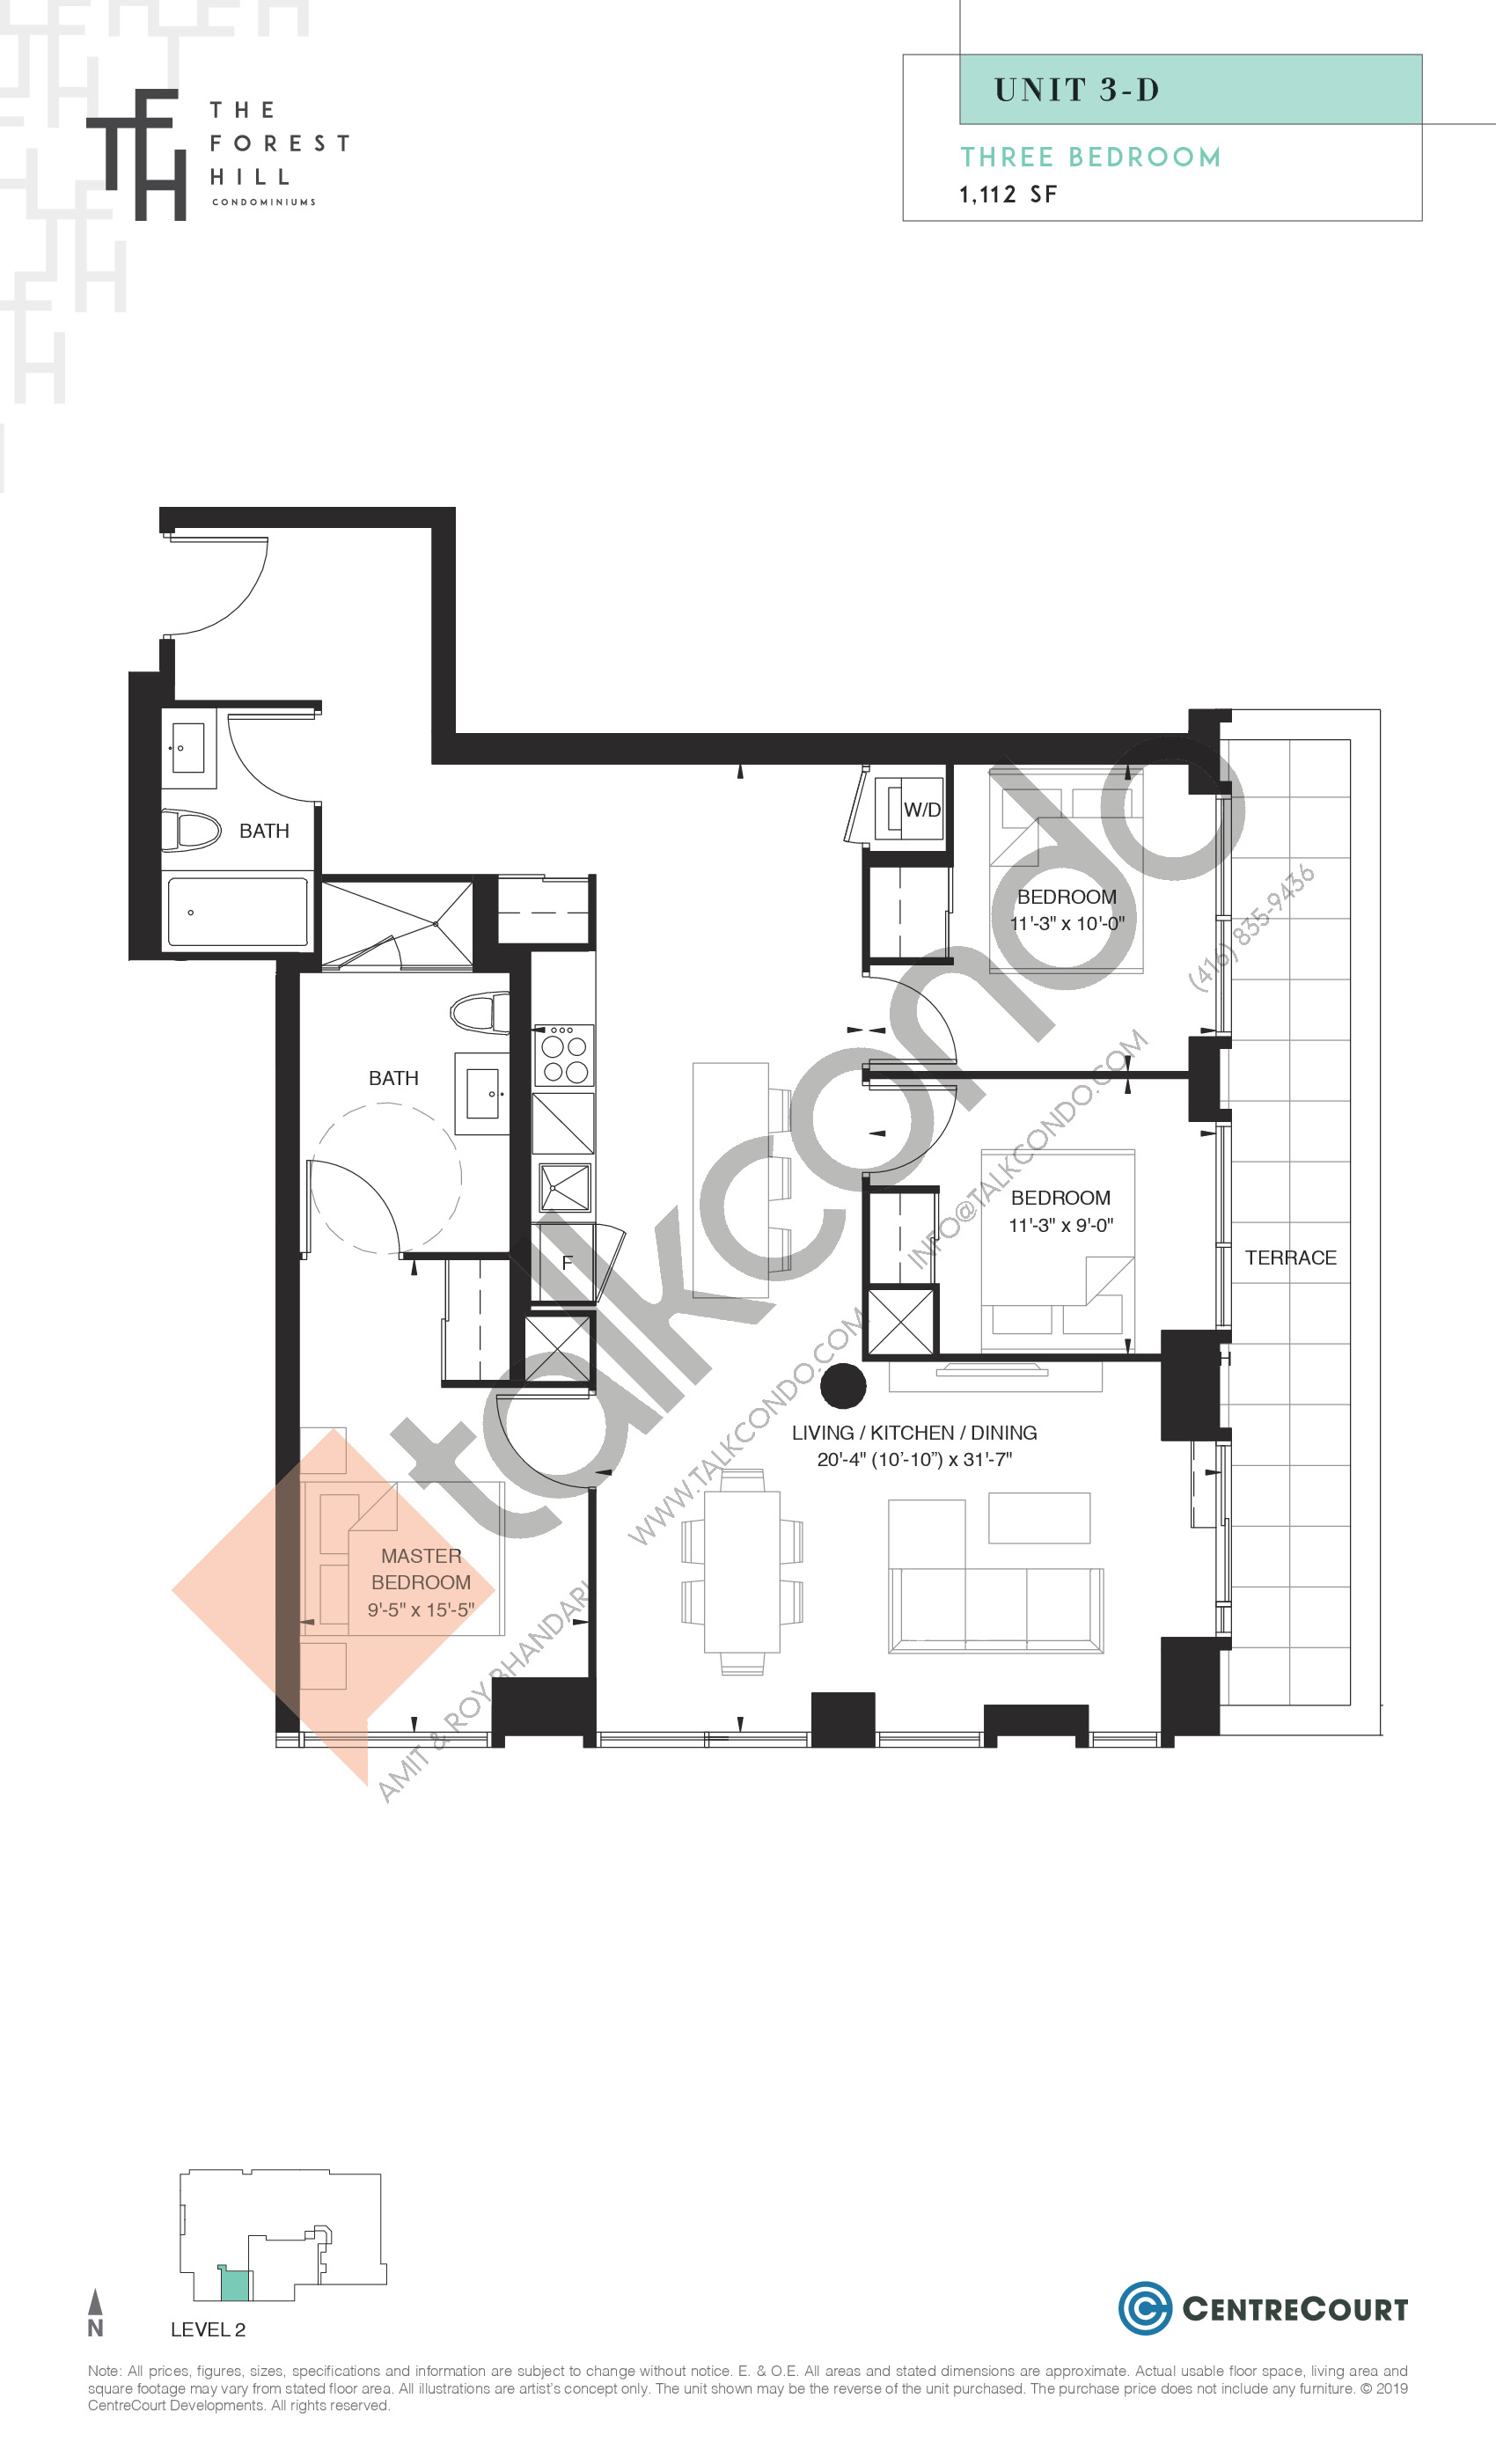 Unit 3-D Floor Plan at The Forest Hill Condos - 1112 sq.ft